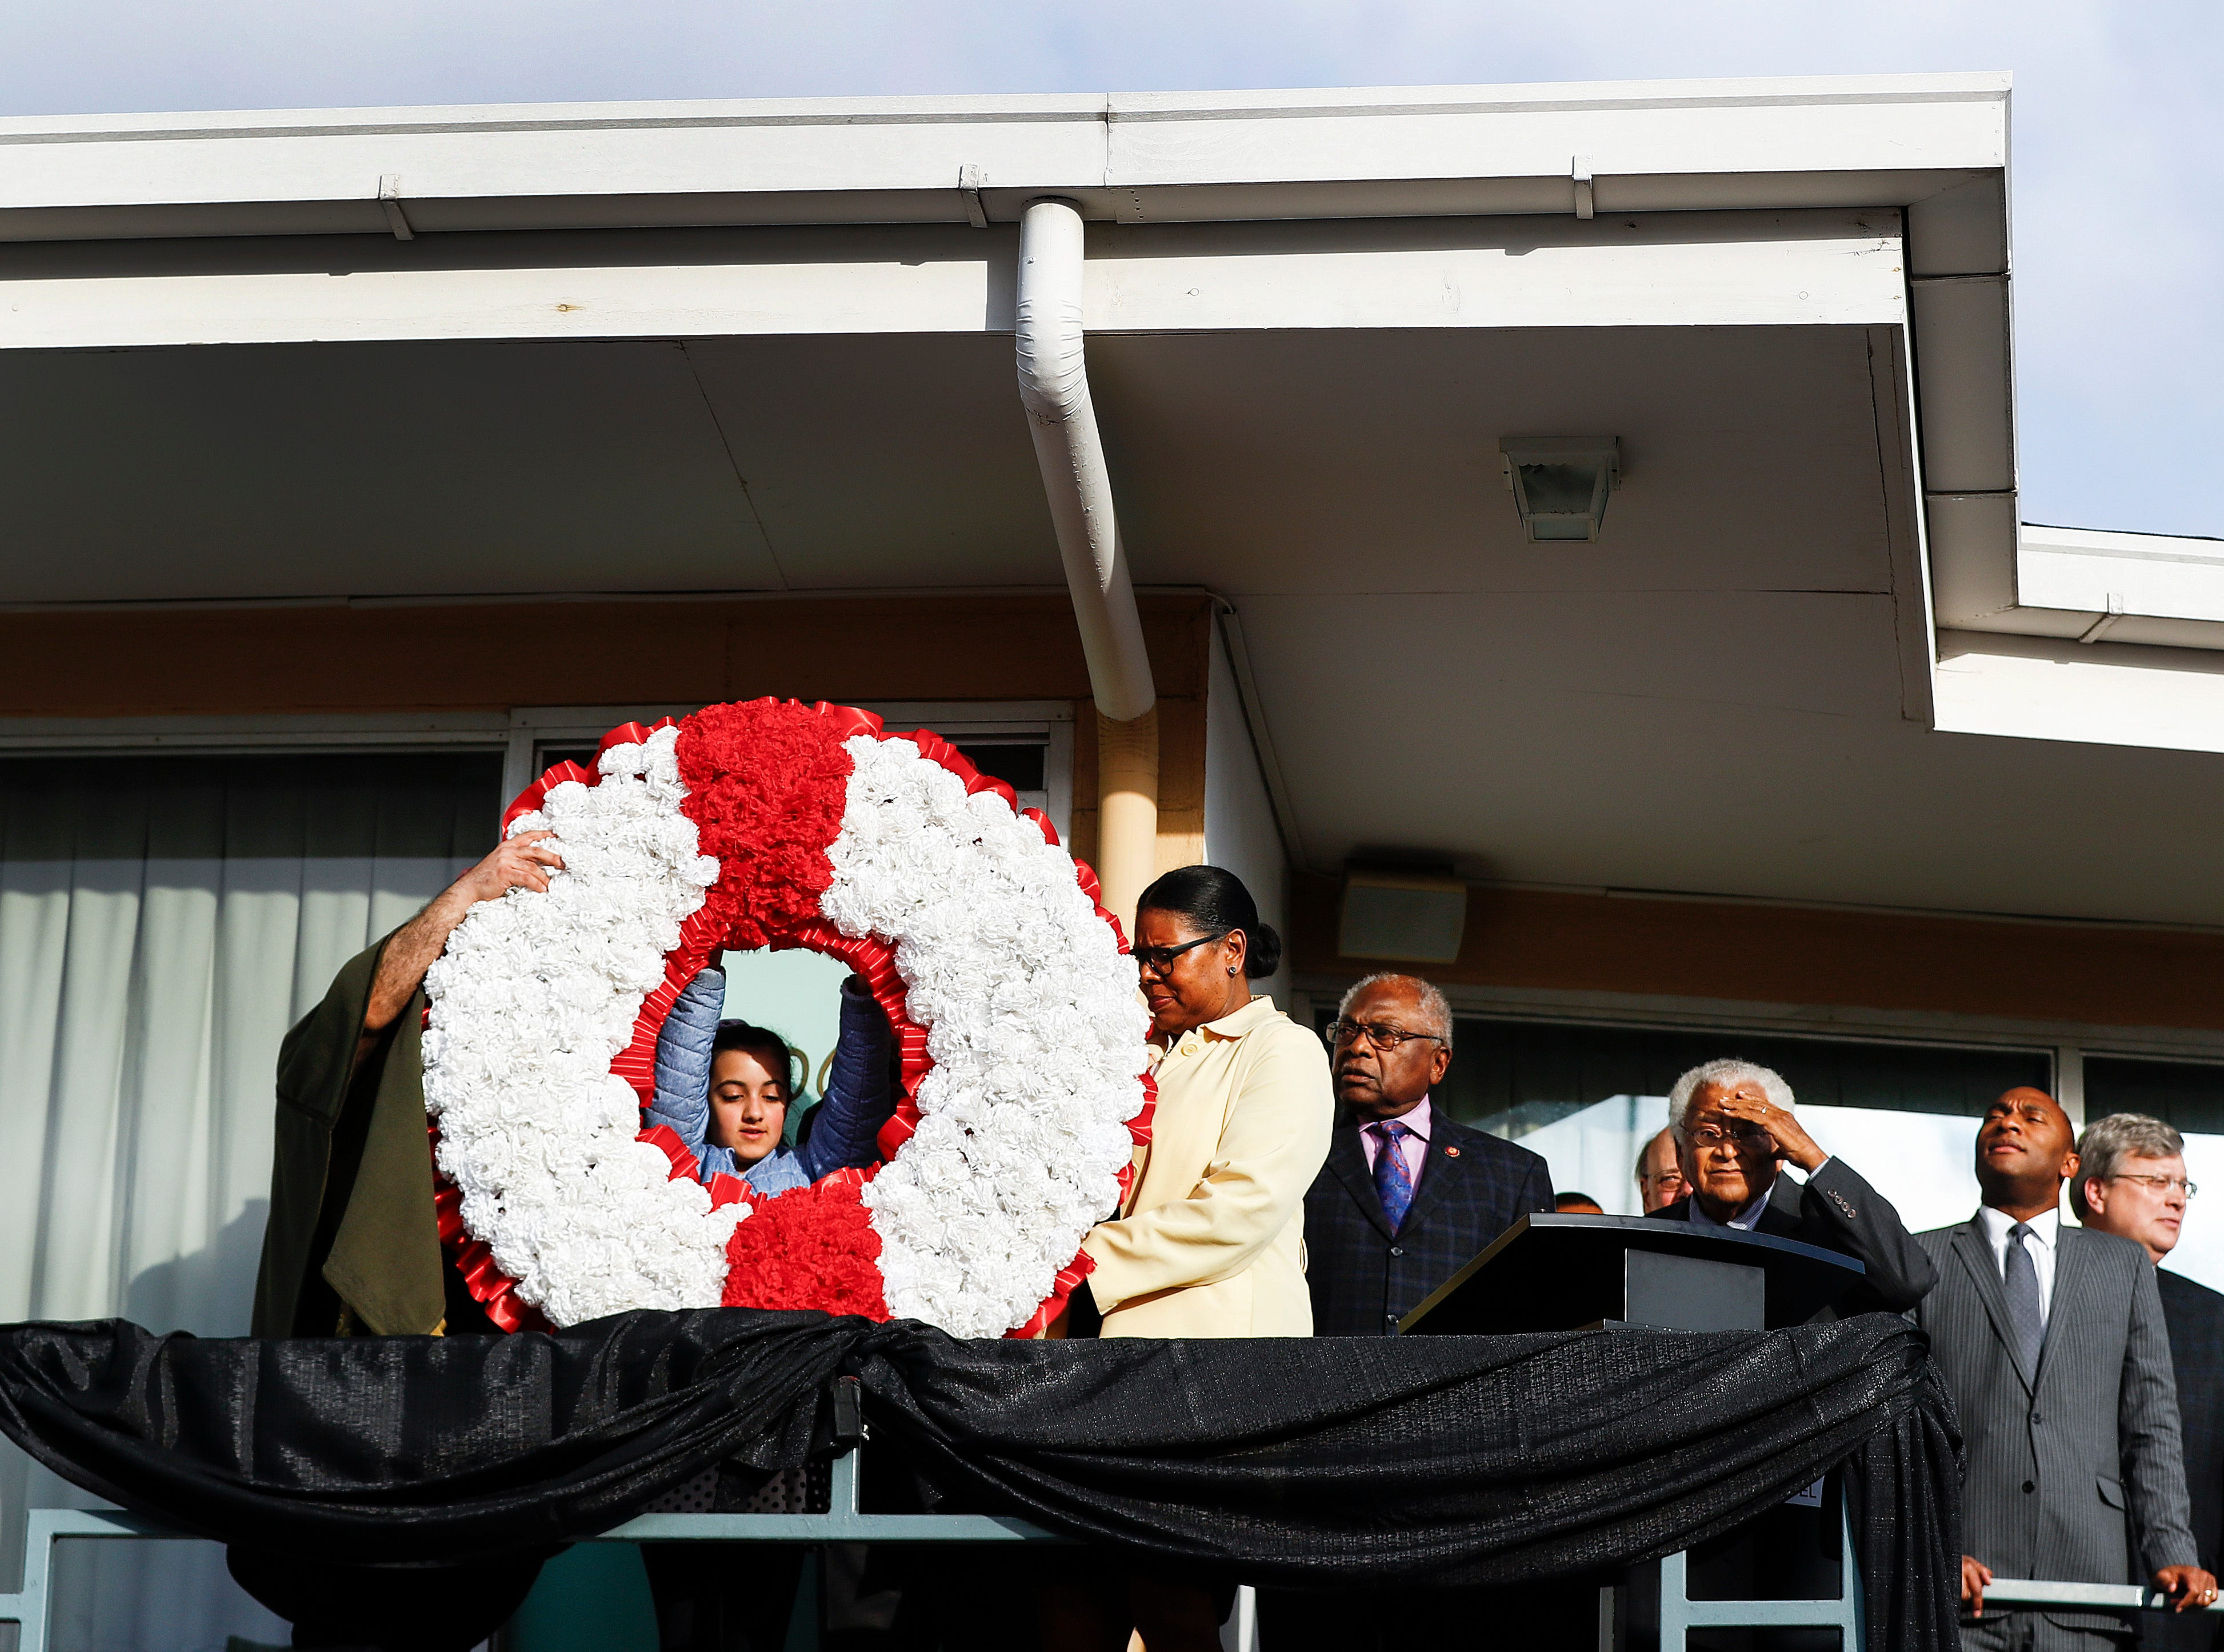 A wreath is placed in front of Room 306  at the National Civil Rights Museum on April 4, 2019, during a commemoration ceremony on the 51st anniversary of Dr. Martin Luther King, Jr.'s assassination.